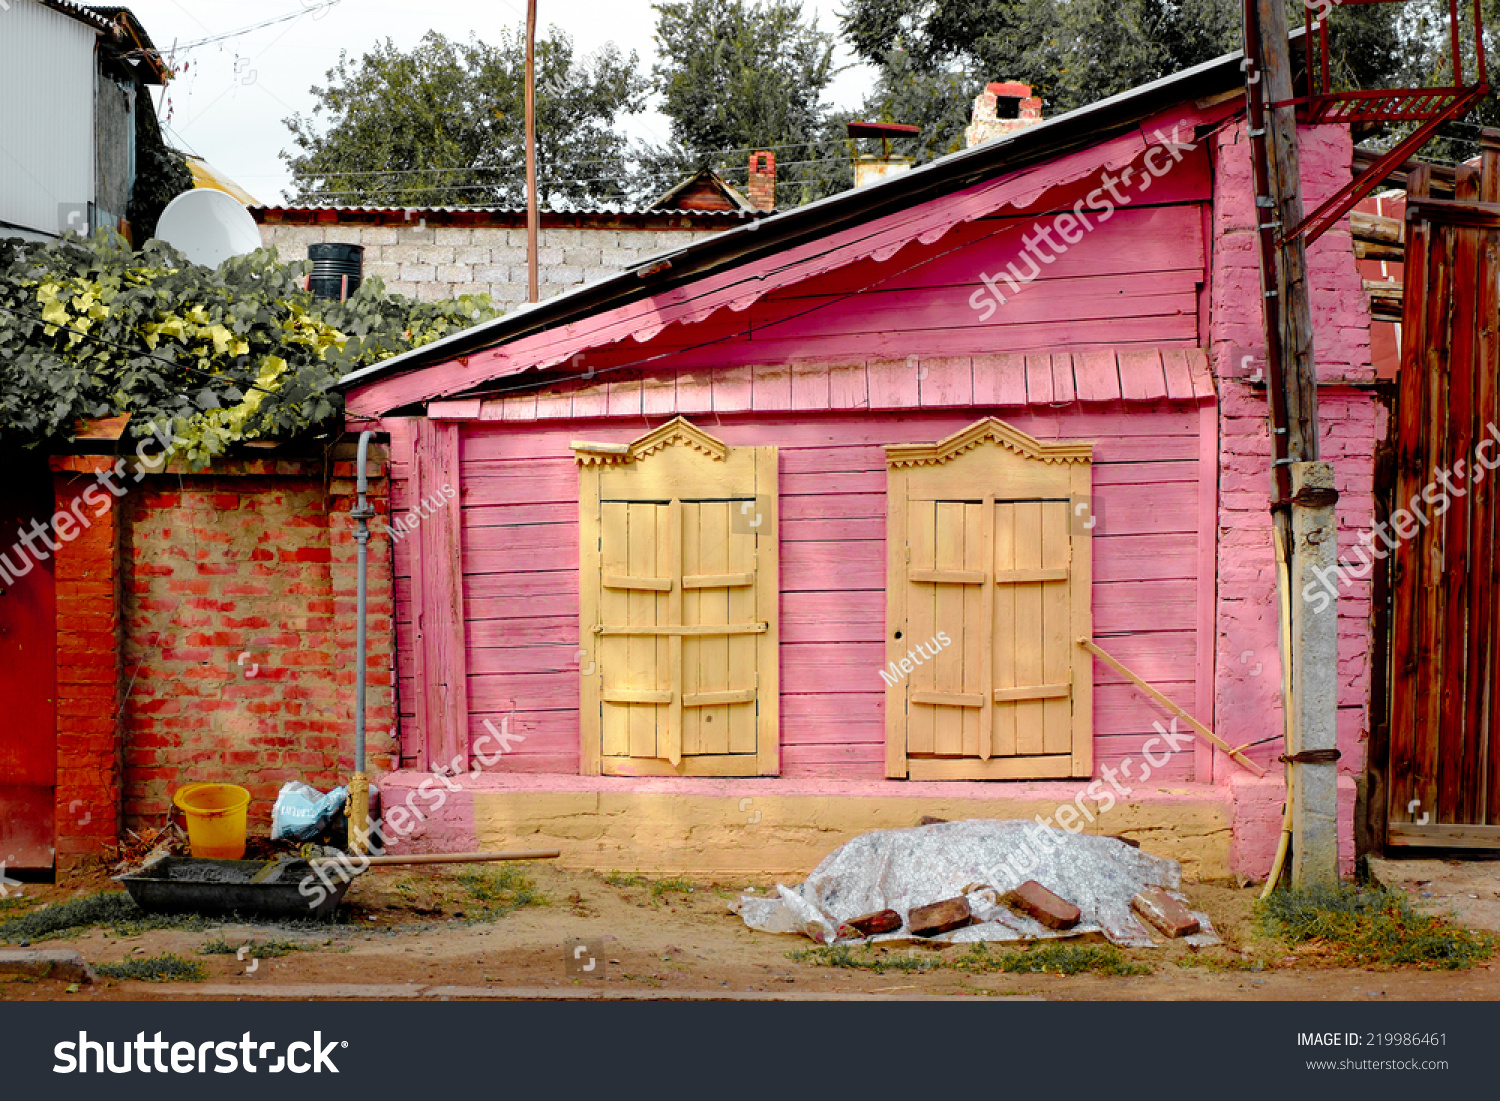 stock-photo-old-painted-in-pink-with-yel